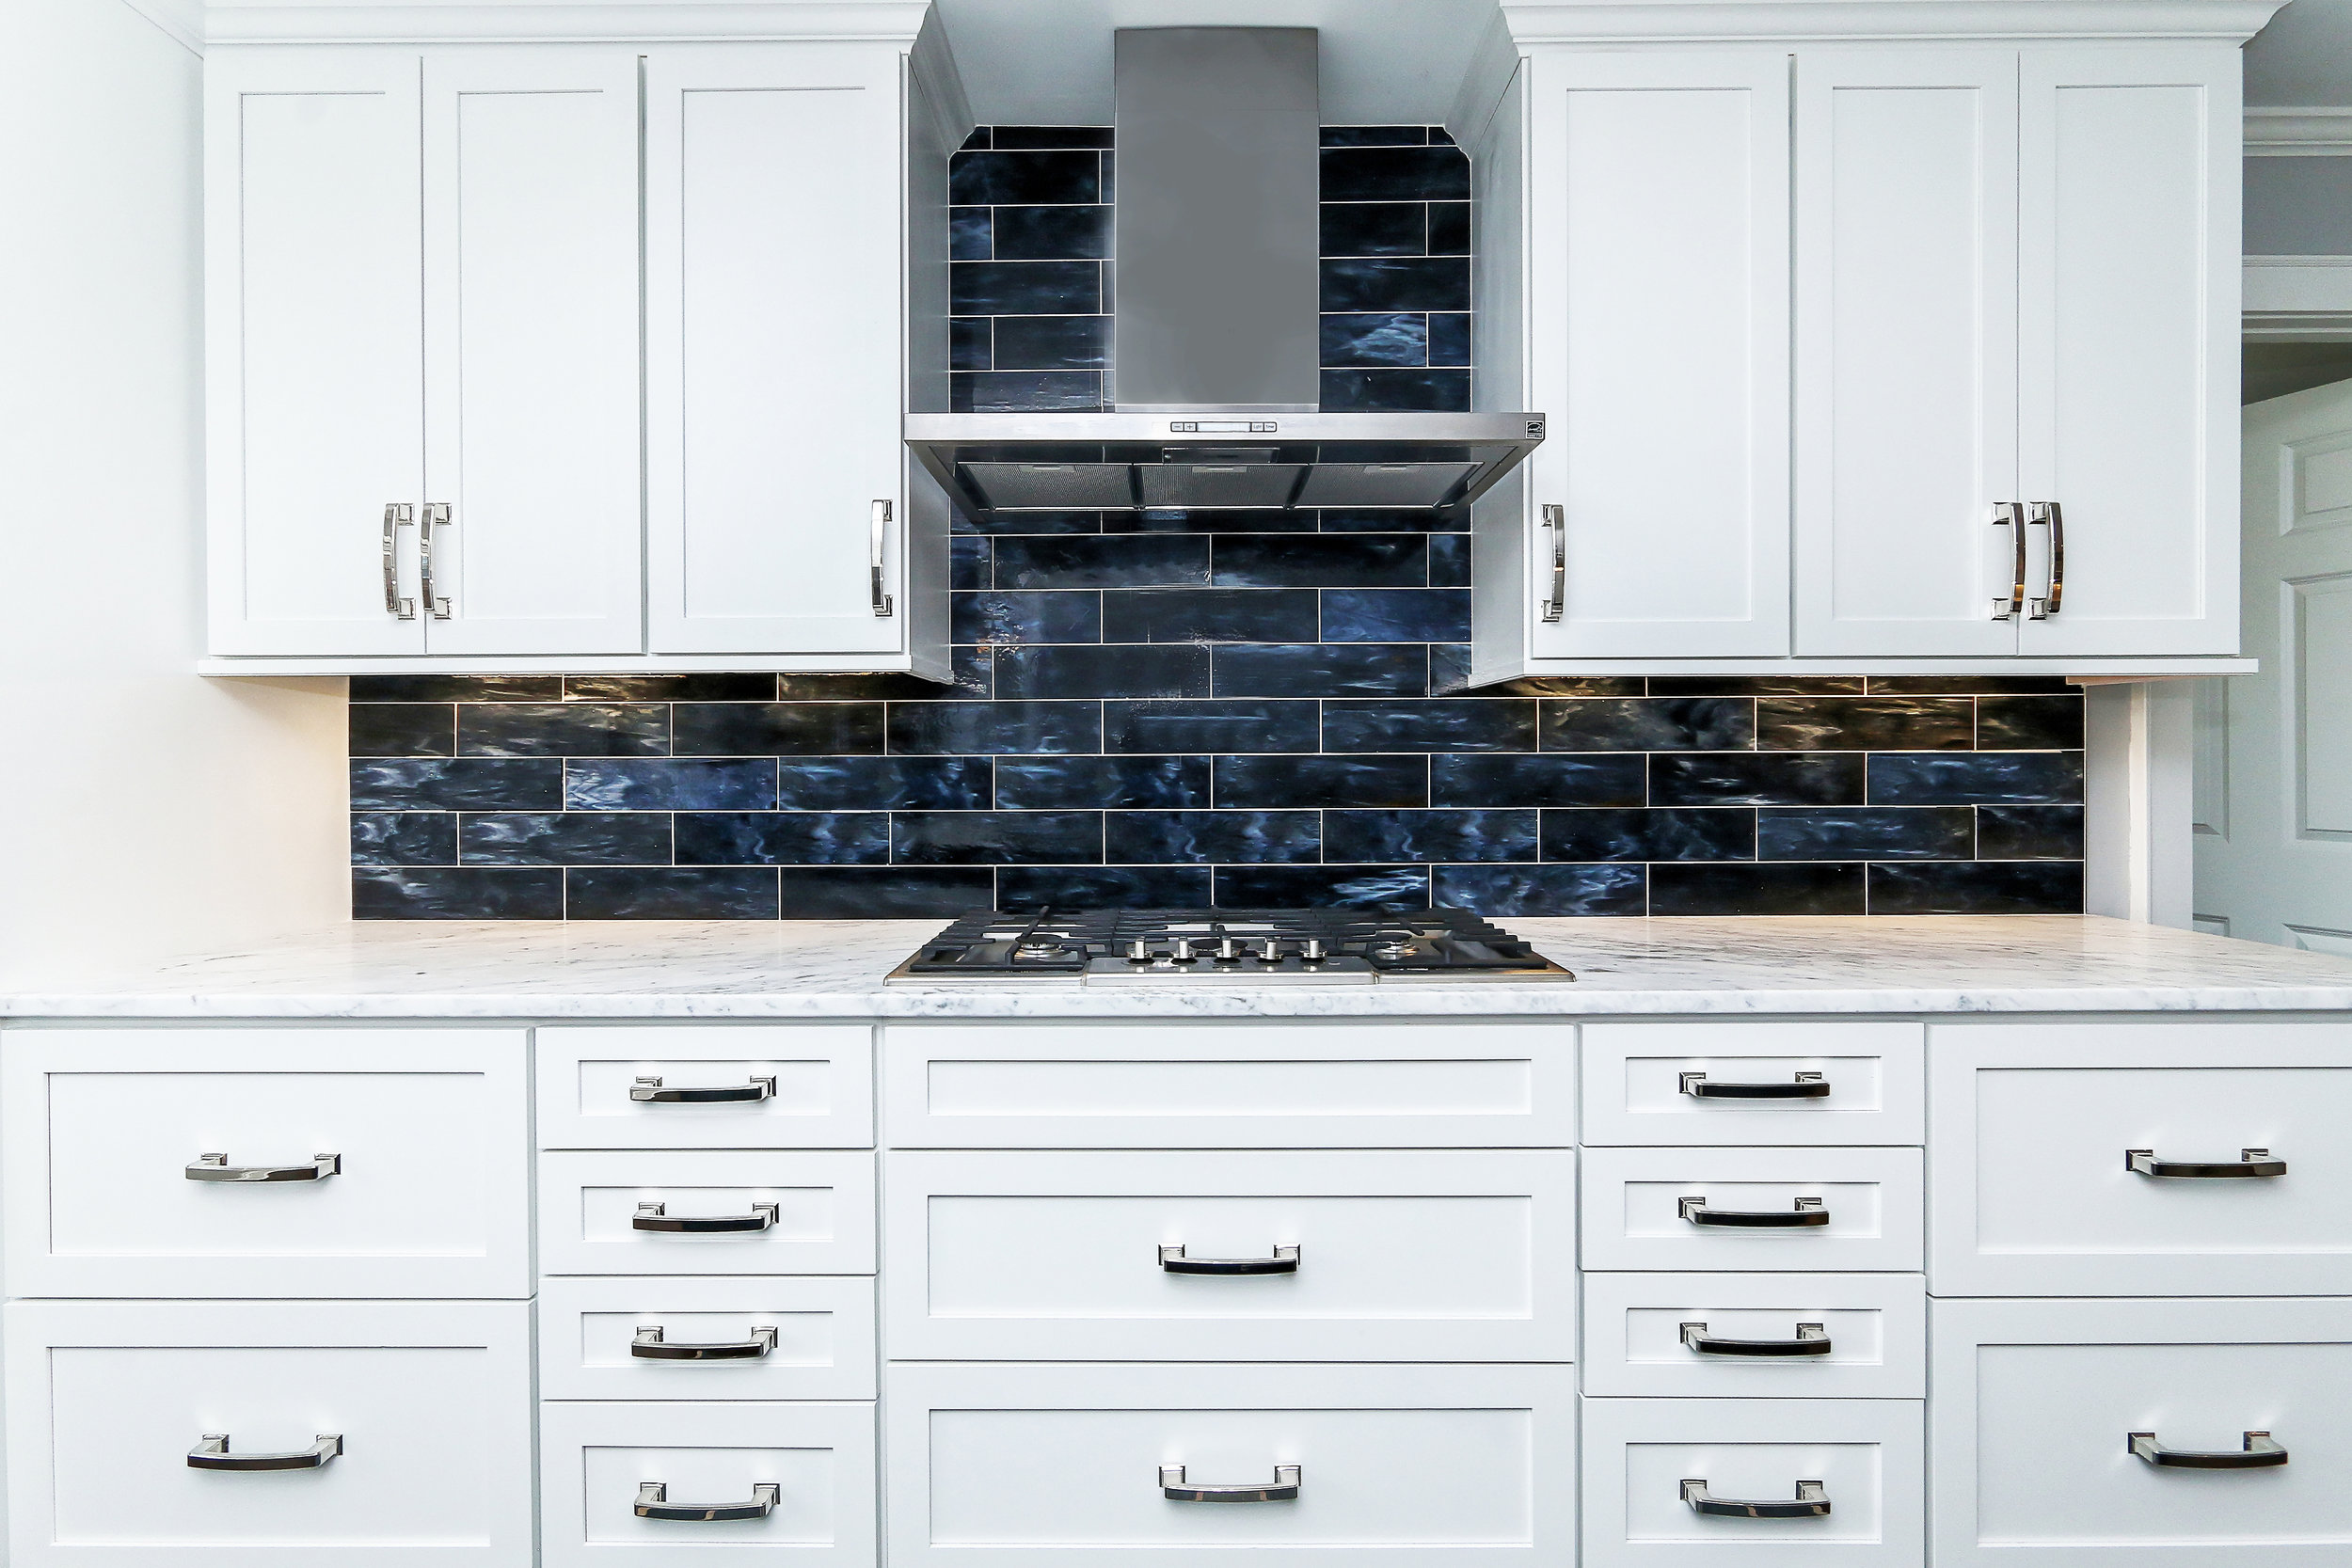 kitchen backsplash.jpg